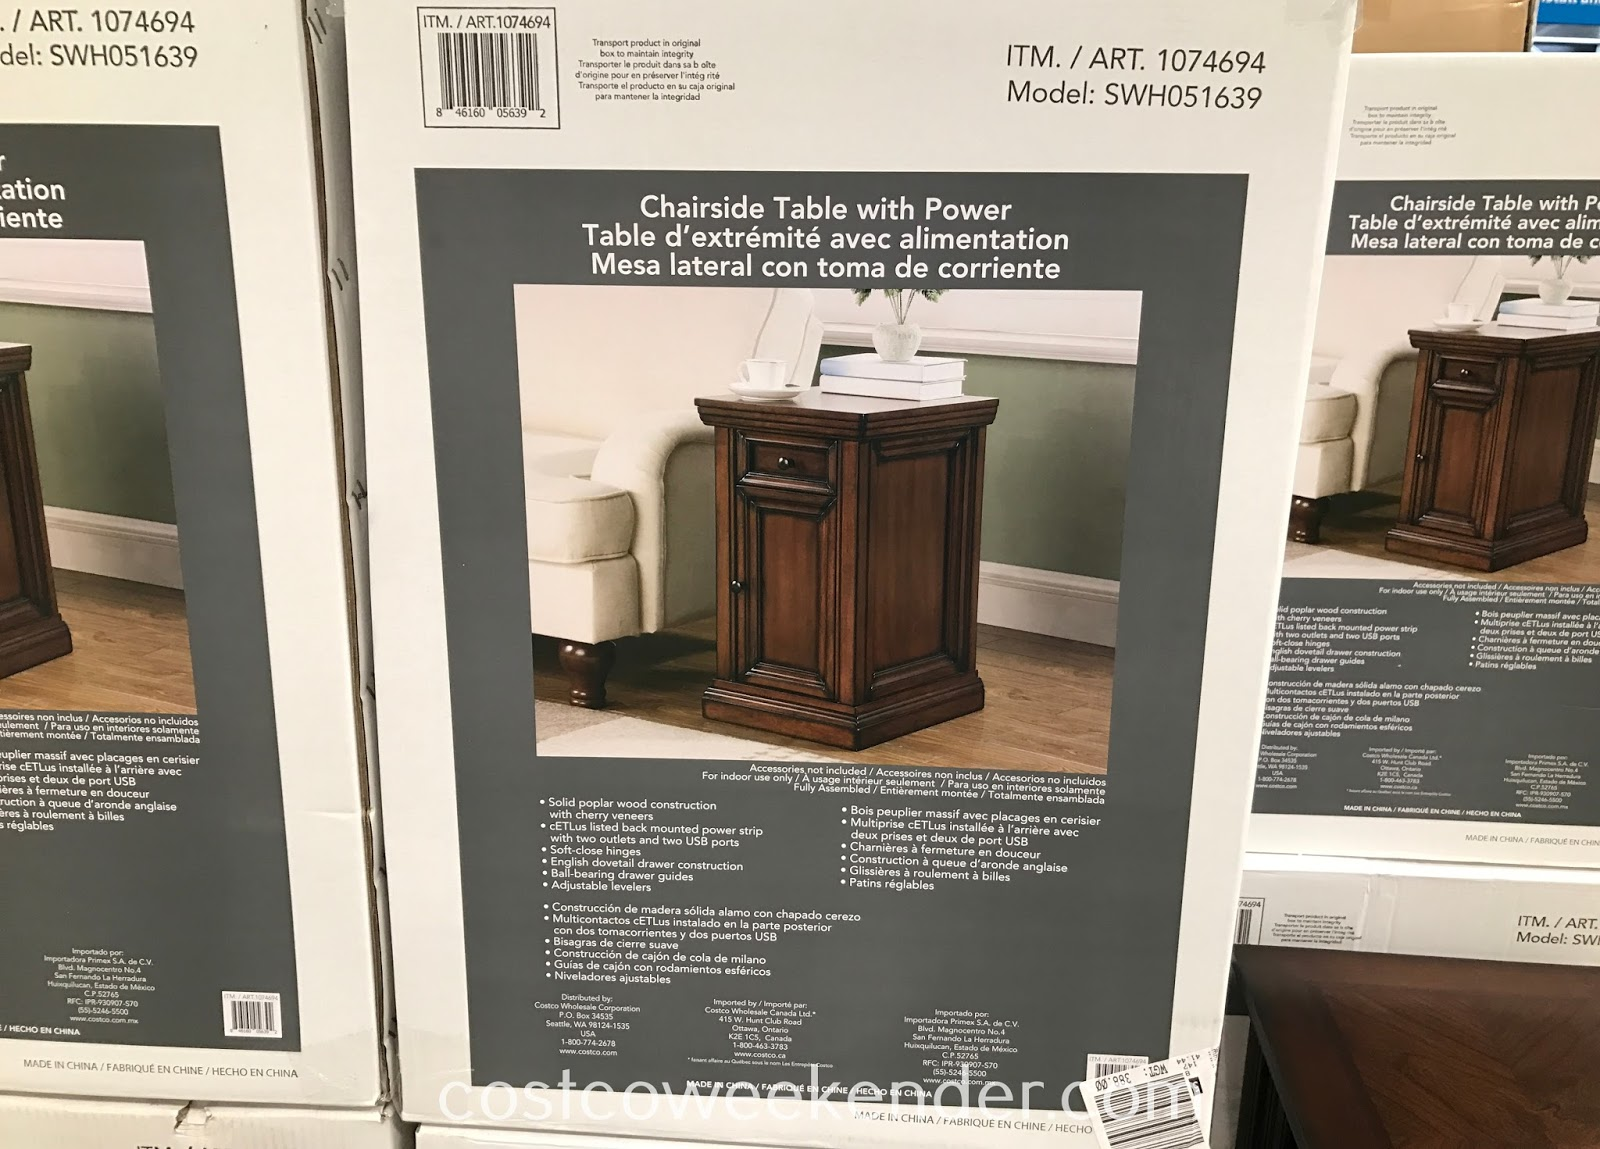 Costco 1074694 - The Well Universal Chairside Table with Power is perfect right by your recliner